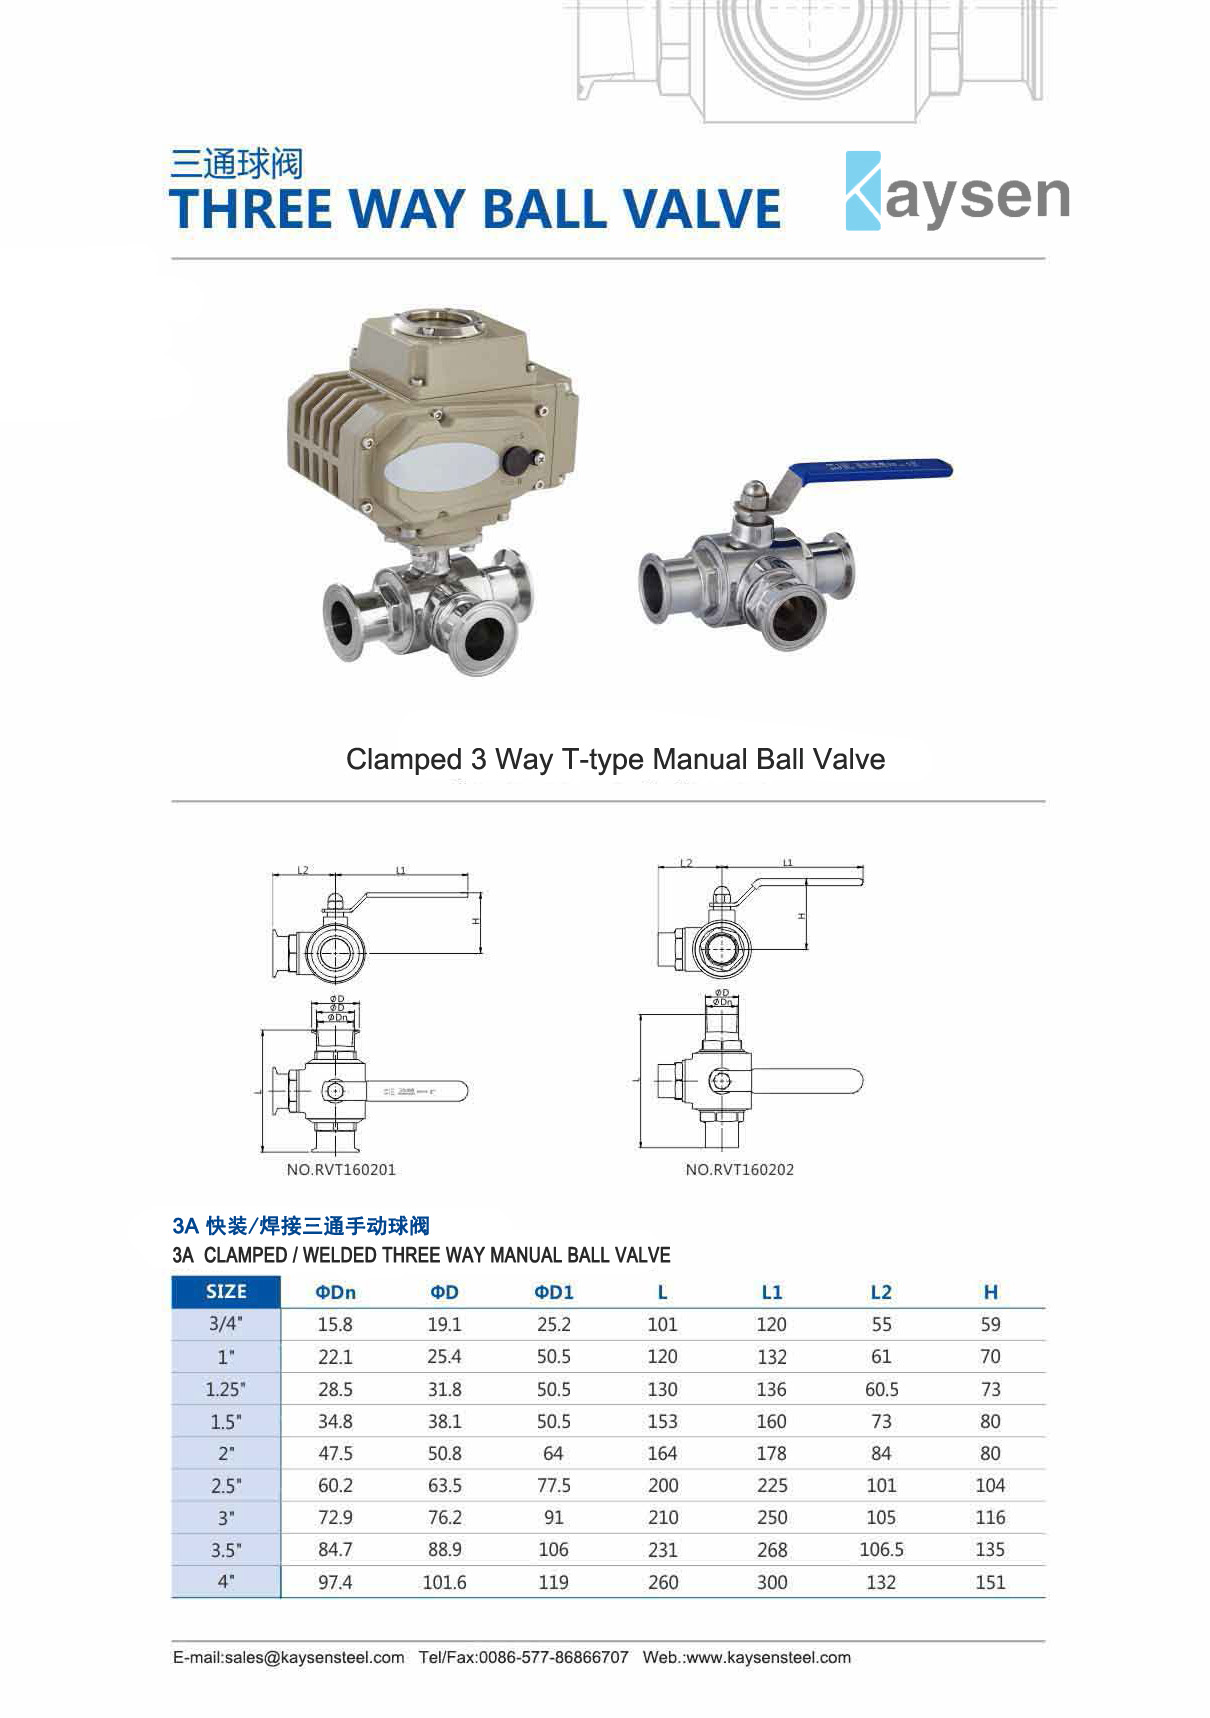 3 way ball valve drawing 2